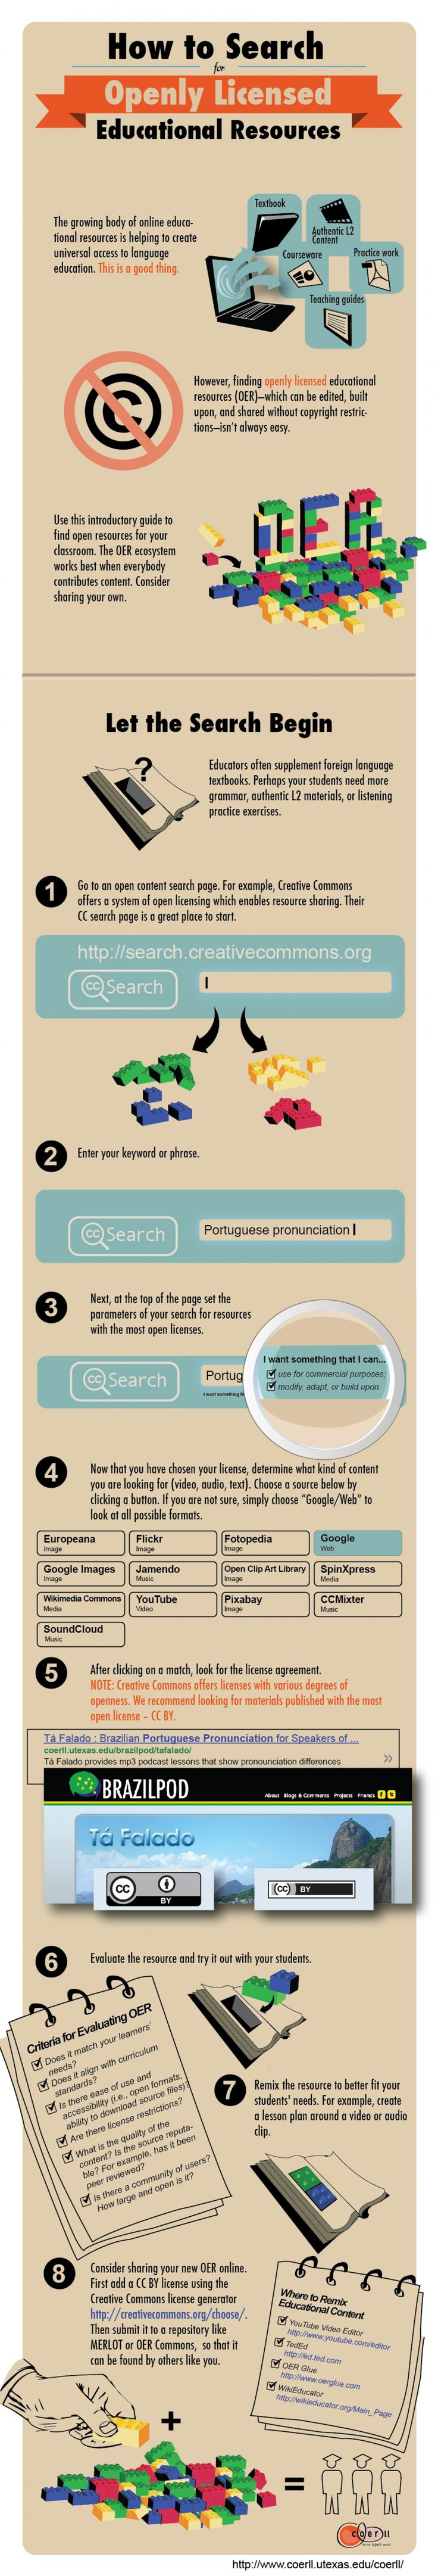 """""""How to Search for Openly Licensed Educational Resources,"""" an infographic by coerll -- Open licenses allow reusing content and the infographic explains how to find the right licenses and also offers a number of content sources for various media."""